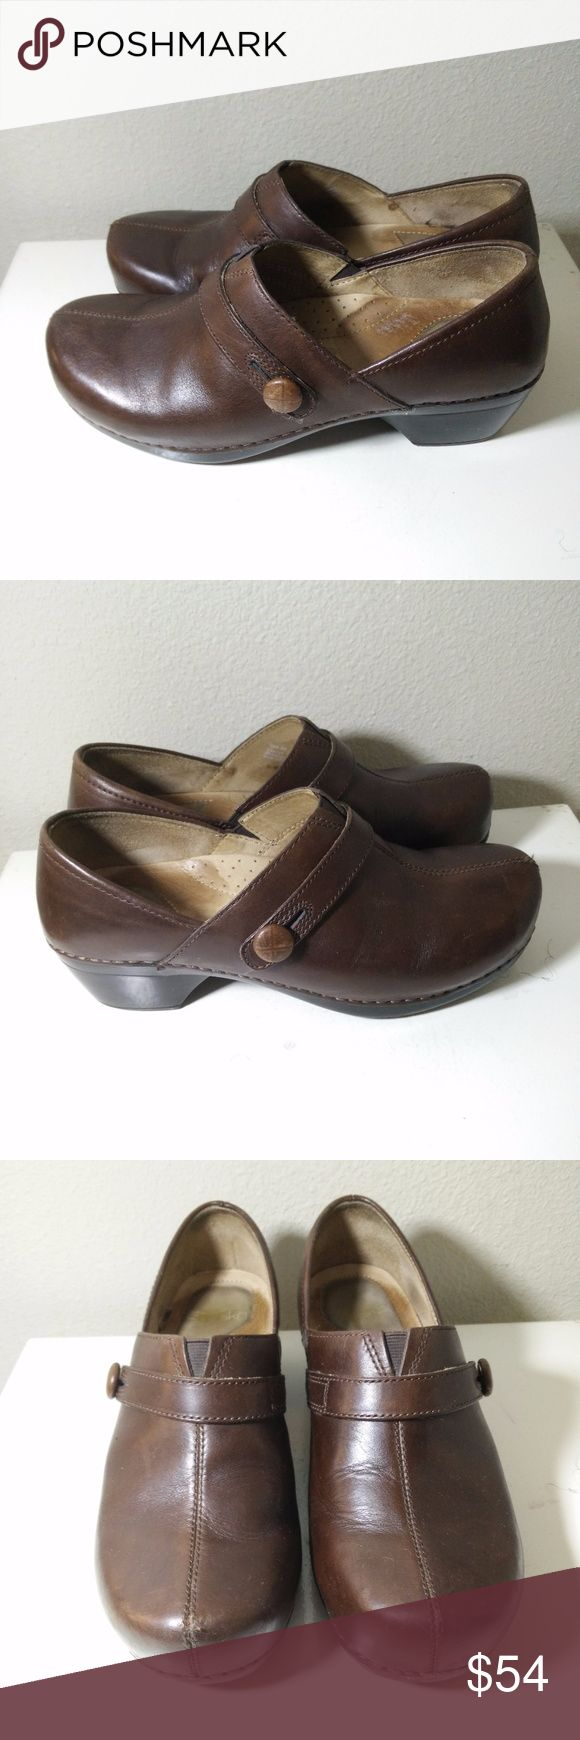 DANSKO WOMENS PROFESSIONAL CLOGS SHOES SZ 39 DANSKO WOMENS PROFESSIONAL CLOGS SHOES SZ 39 BROWN WITH SIDE BUTTON DESIGN - Very nice looking shoes - showing the odd minor stratch/scuff mark in places but still in GOOD overall condition - see pictures for more details.  (REF#2105) Dansko Shoes Mules & Clogs